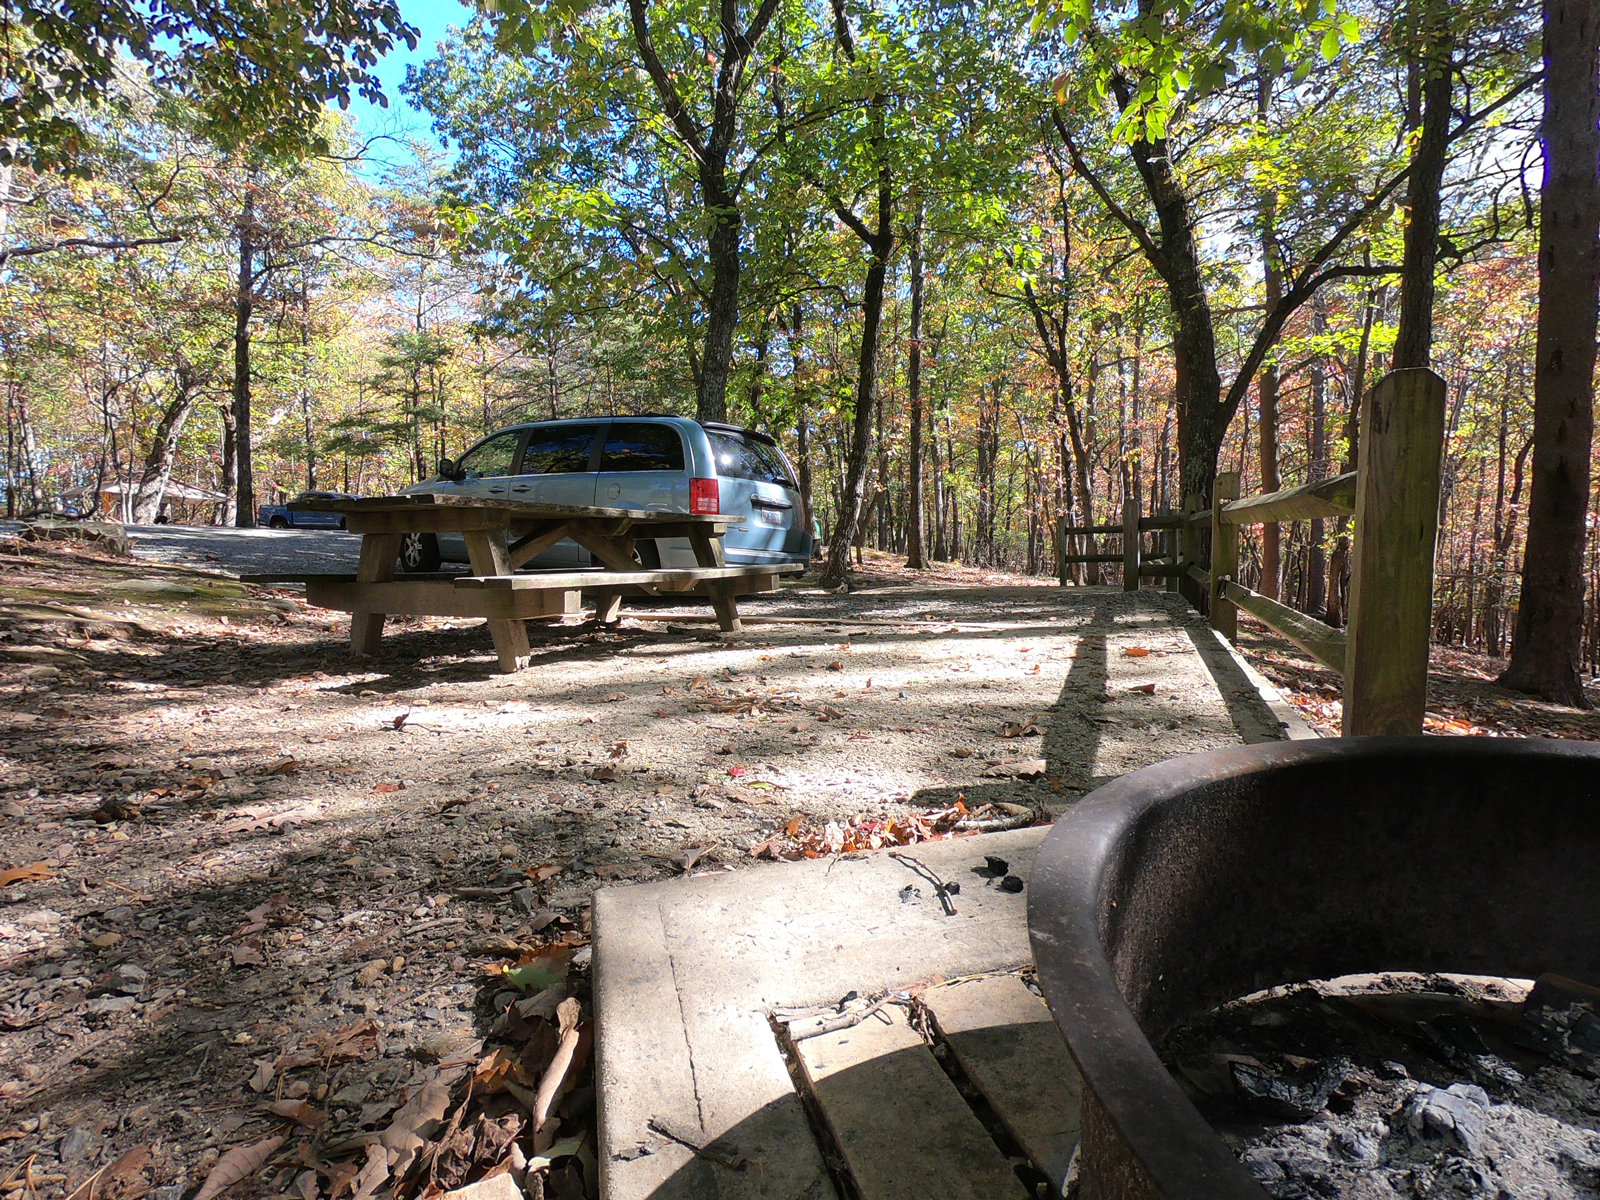 Van, picnic table, and fire ring at campsite in Hanging Rock State Park, North Carolina